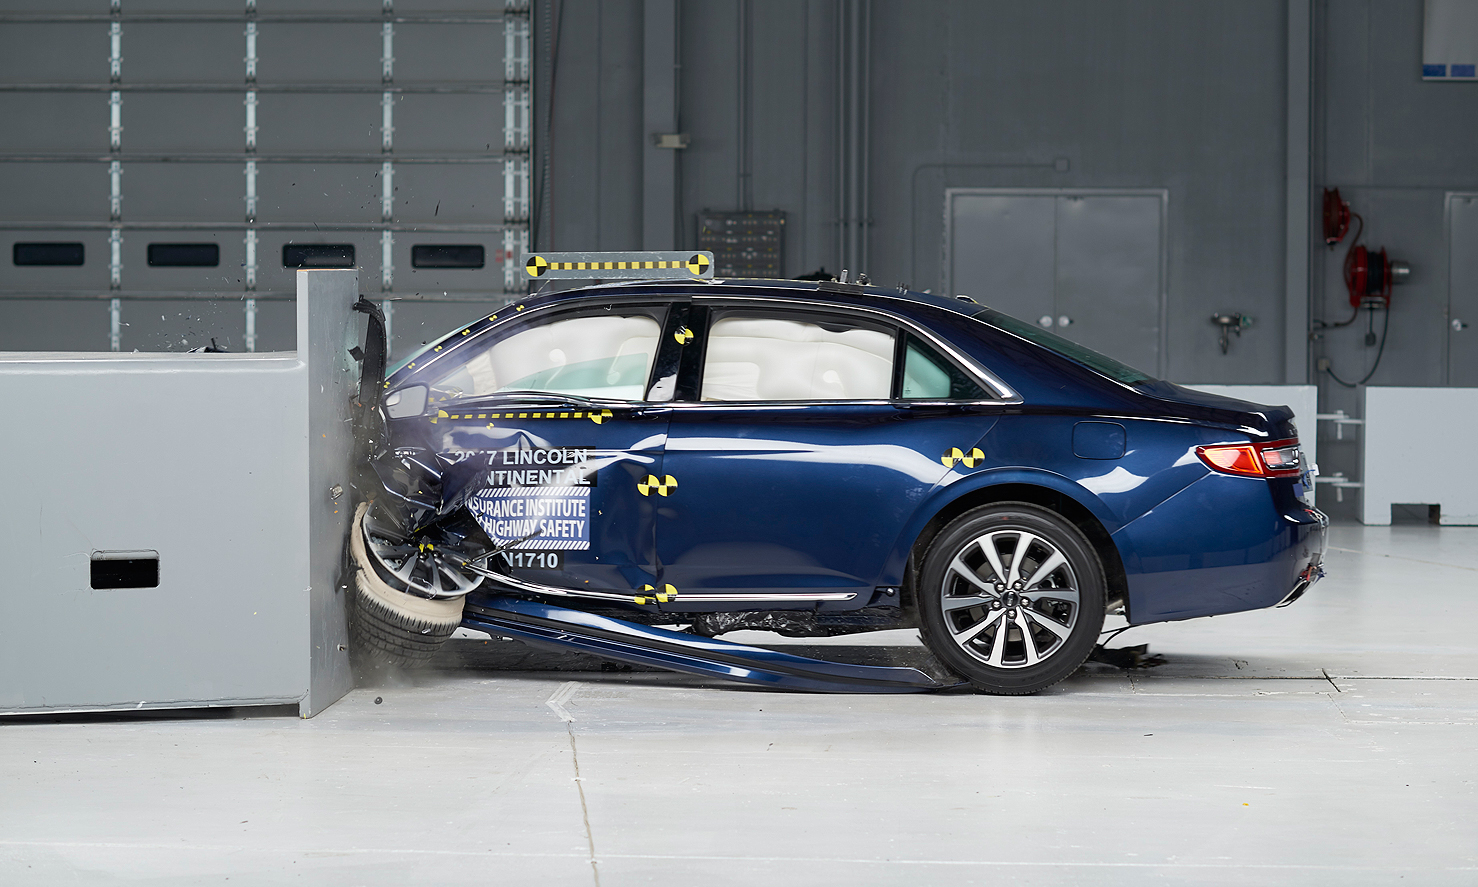 Iihs Safety Ratings >> Lincoln Mercedes Toyota Large Cars Receive Top Iihs Safety Ratings